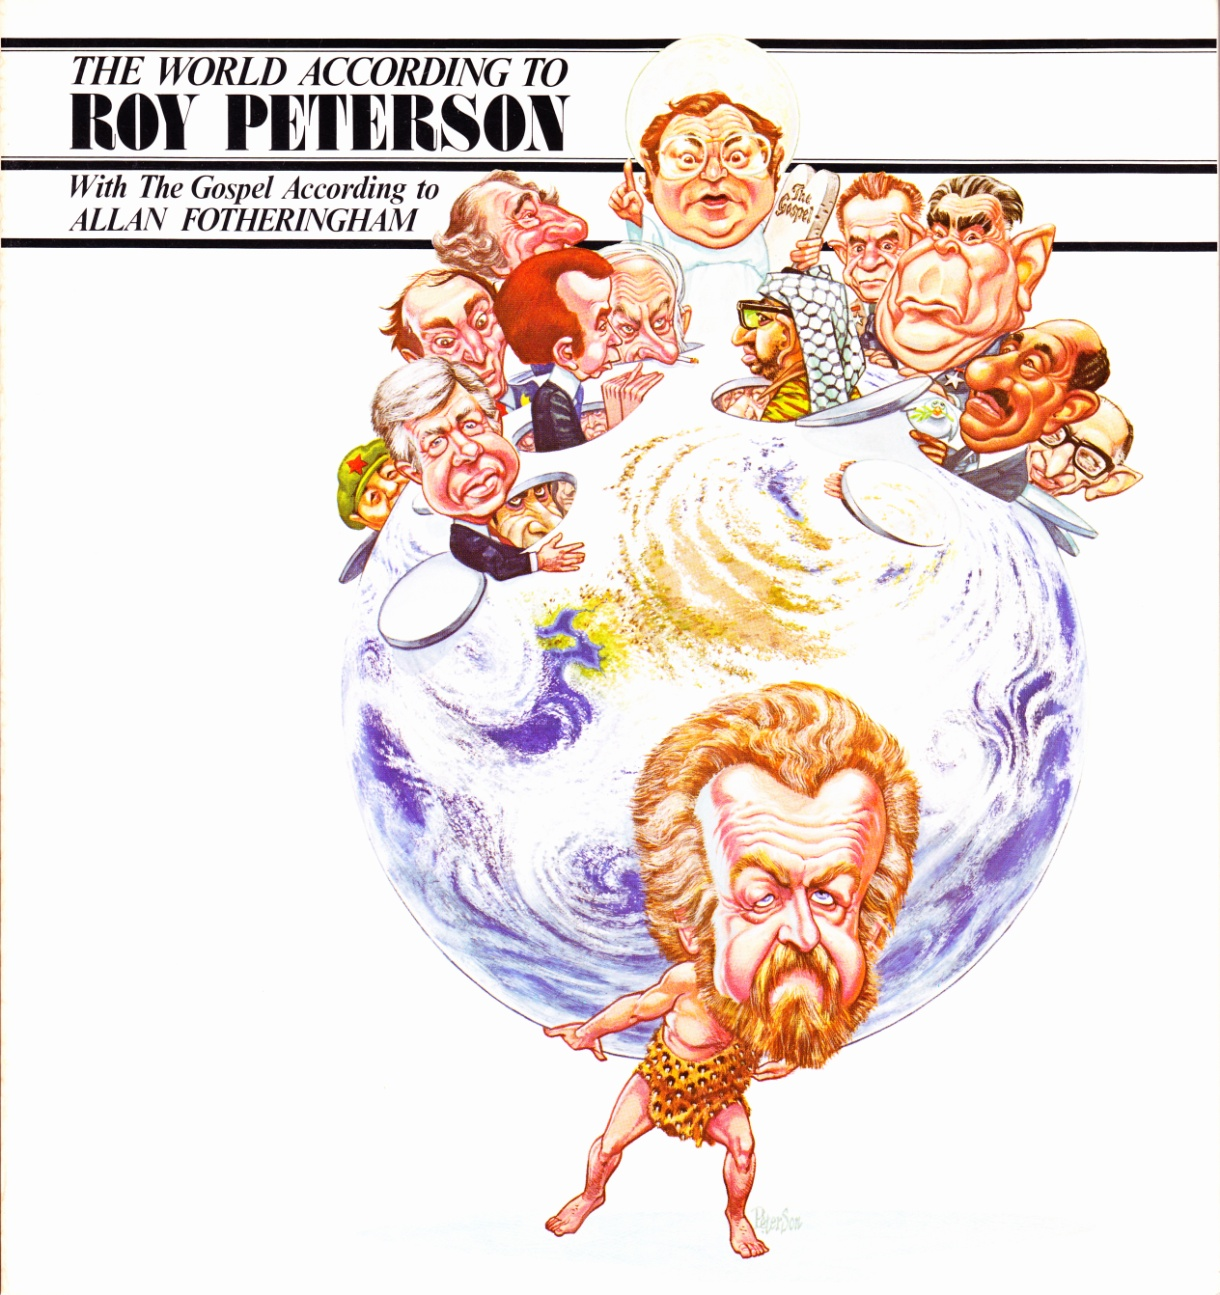 C:\Users\Robert\Documents\CARTOONING ILLUSTRATION ANIMATION\IMAGE BY CARTOONIST\P\PETERSON Roy The World According To ..., front cover.jpg